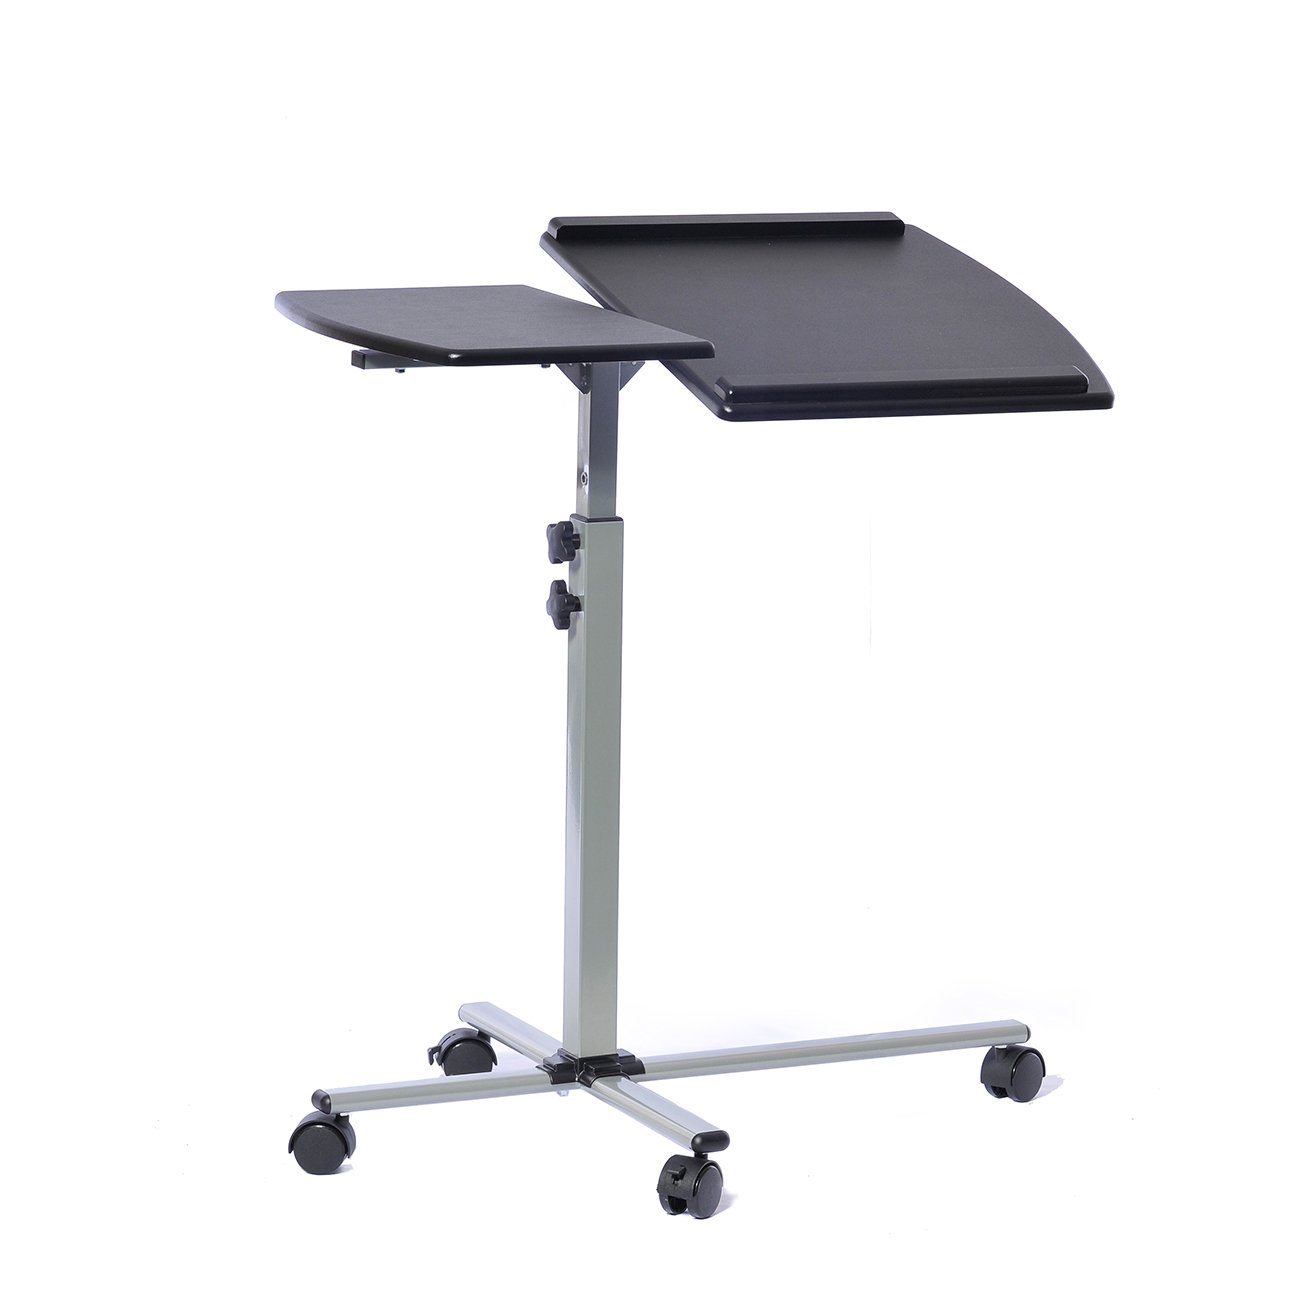 Techni Mobili Rolling Adjustable Laptop Cart, Graphite